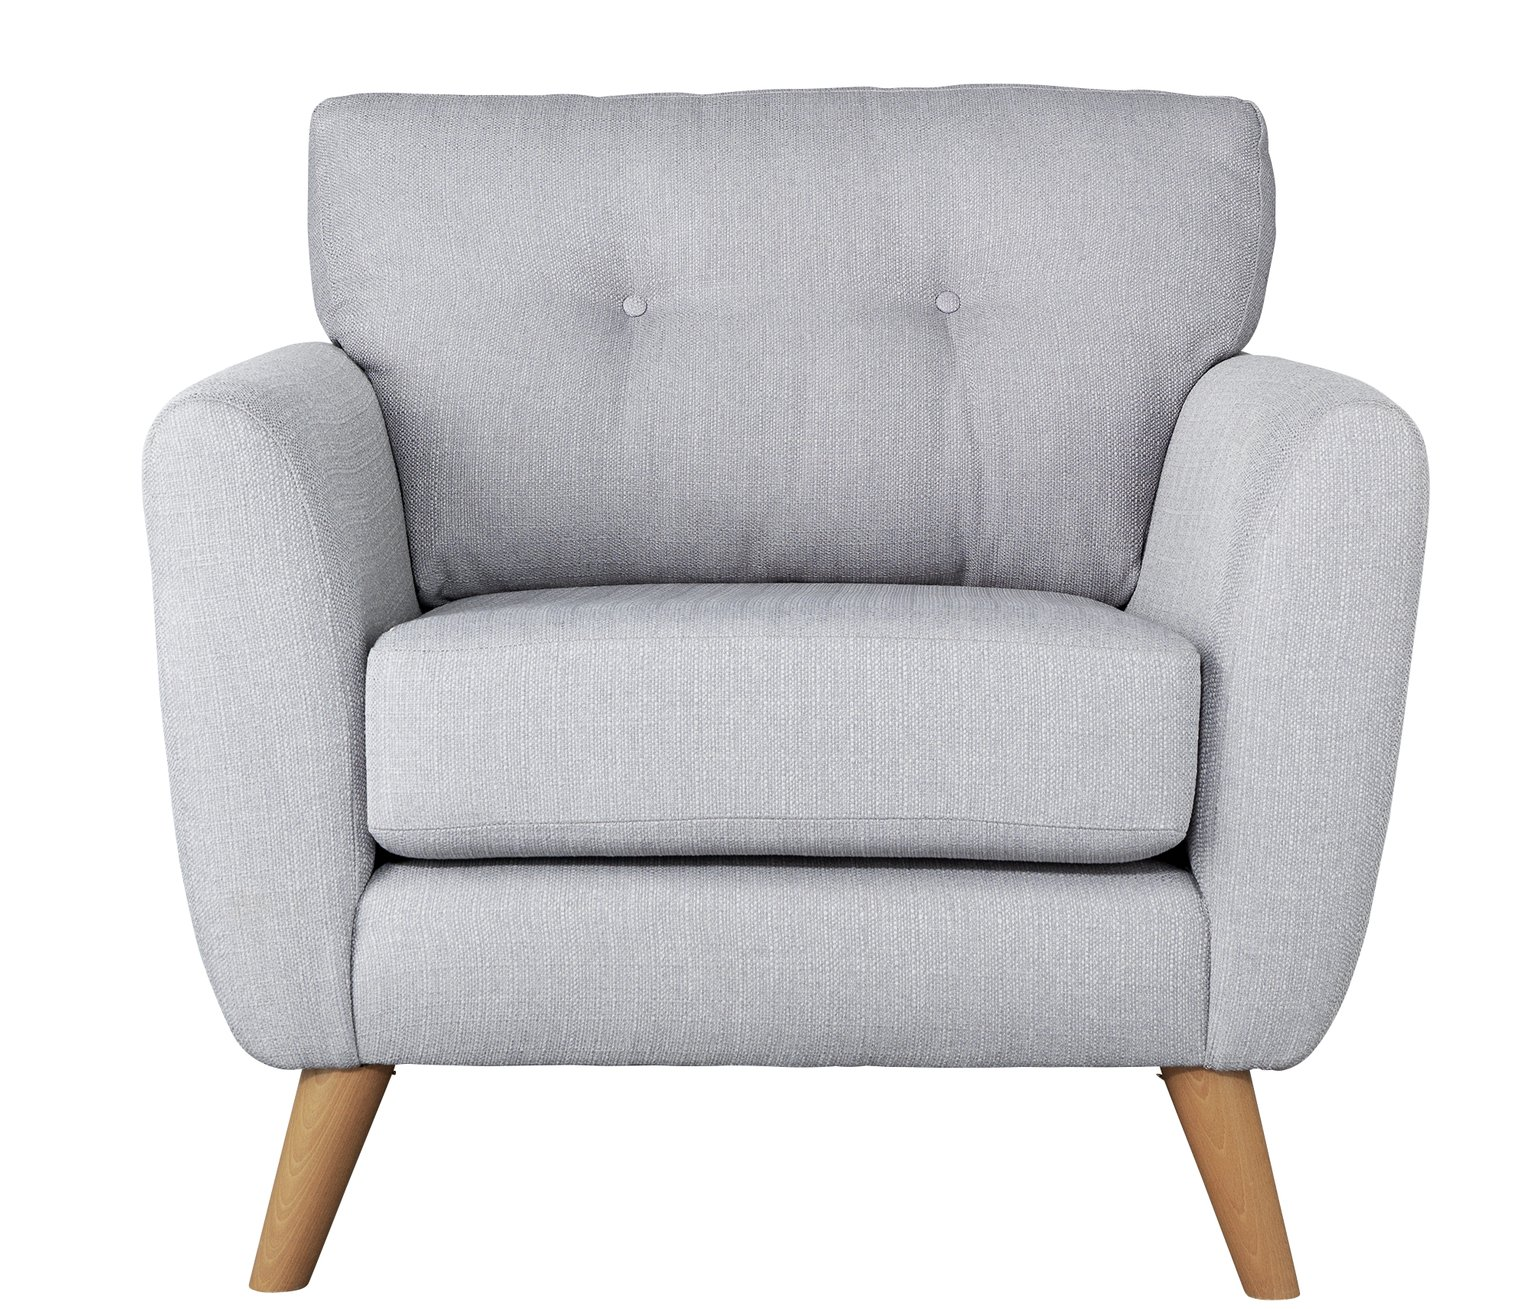 Argos Home Kari Fabric Armchair - Light Grey